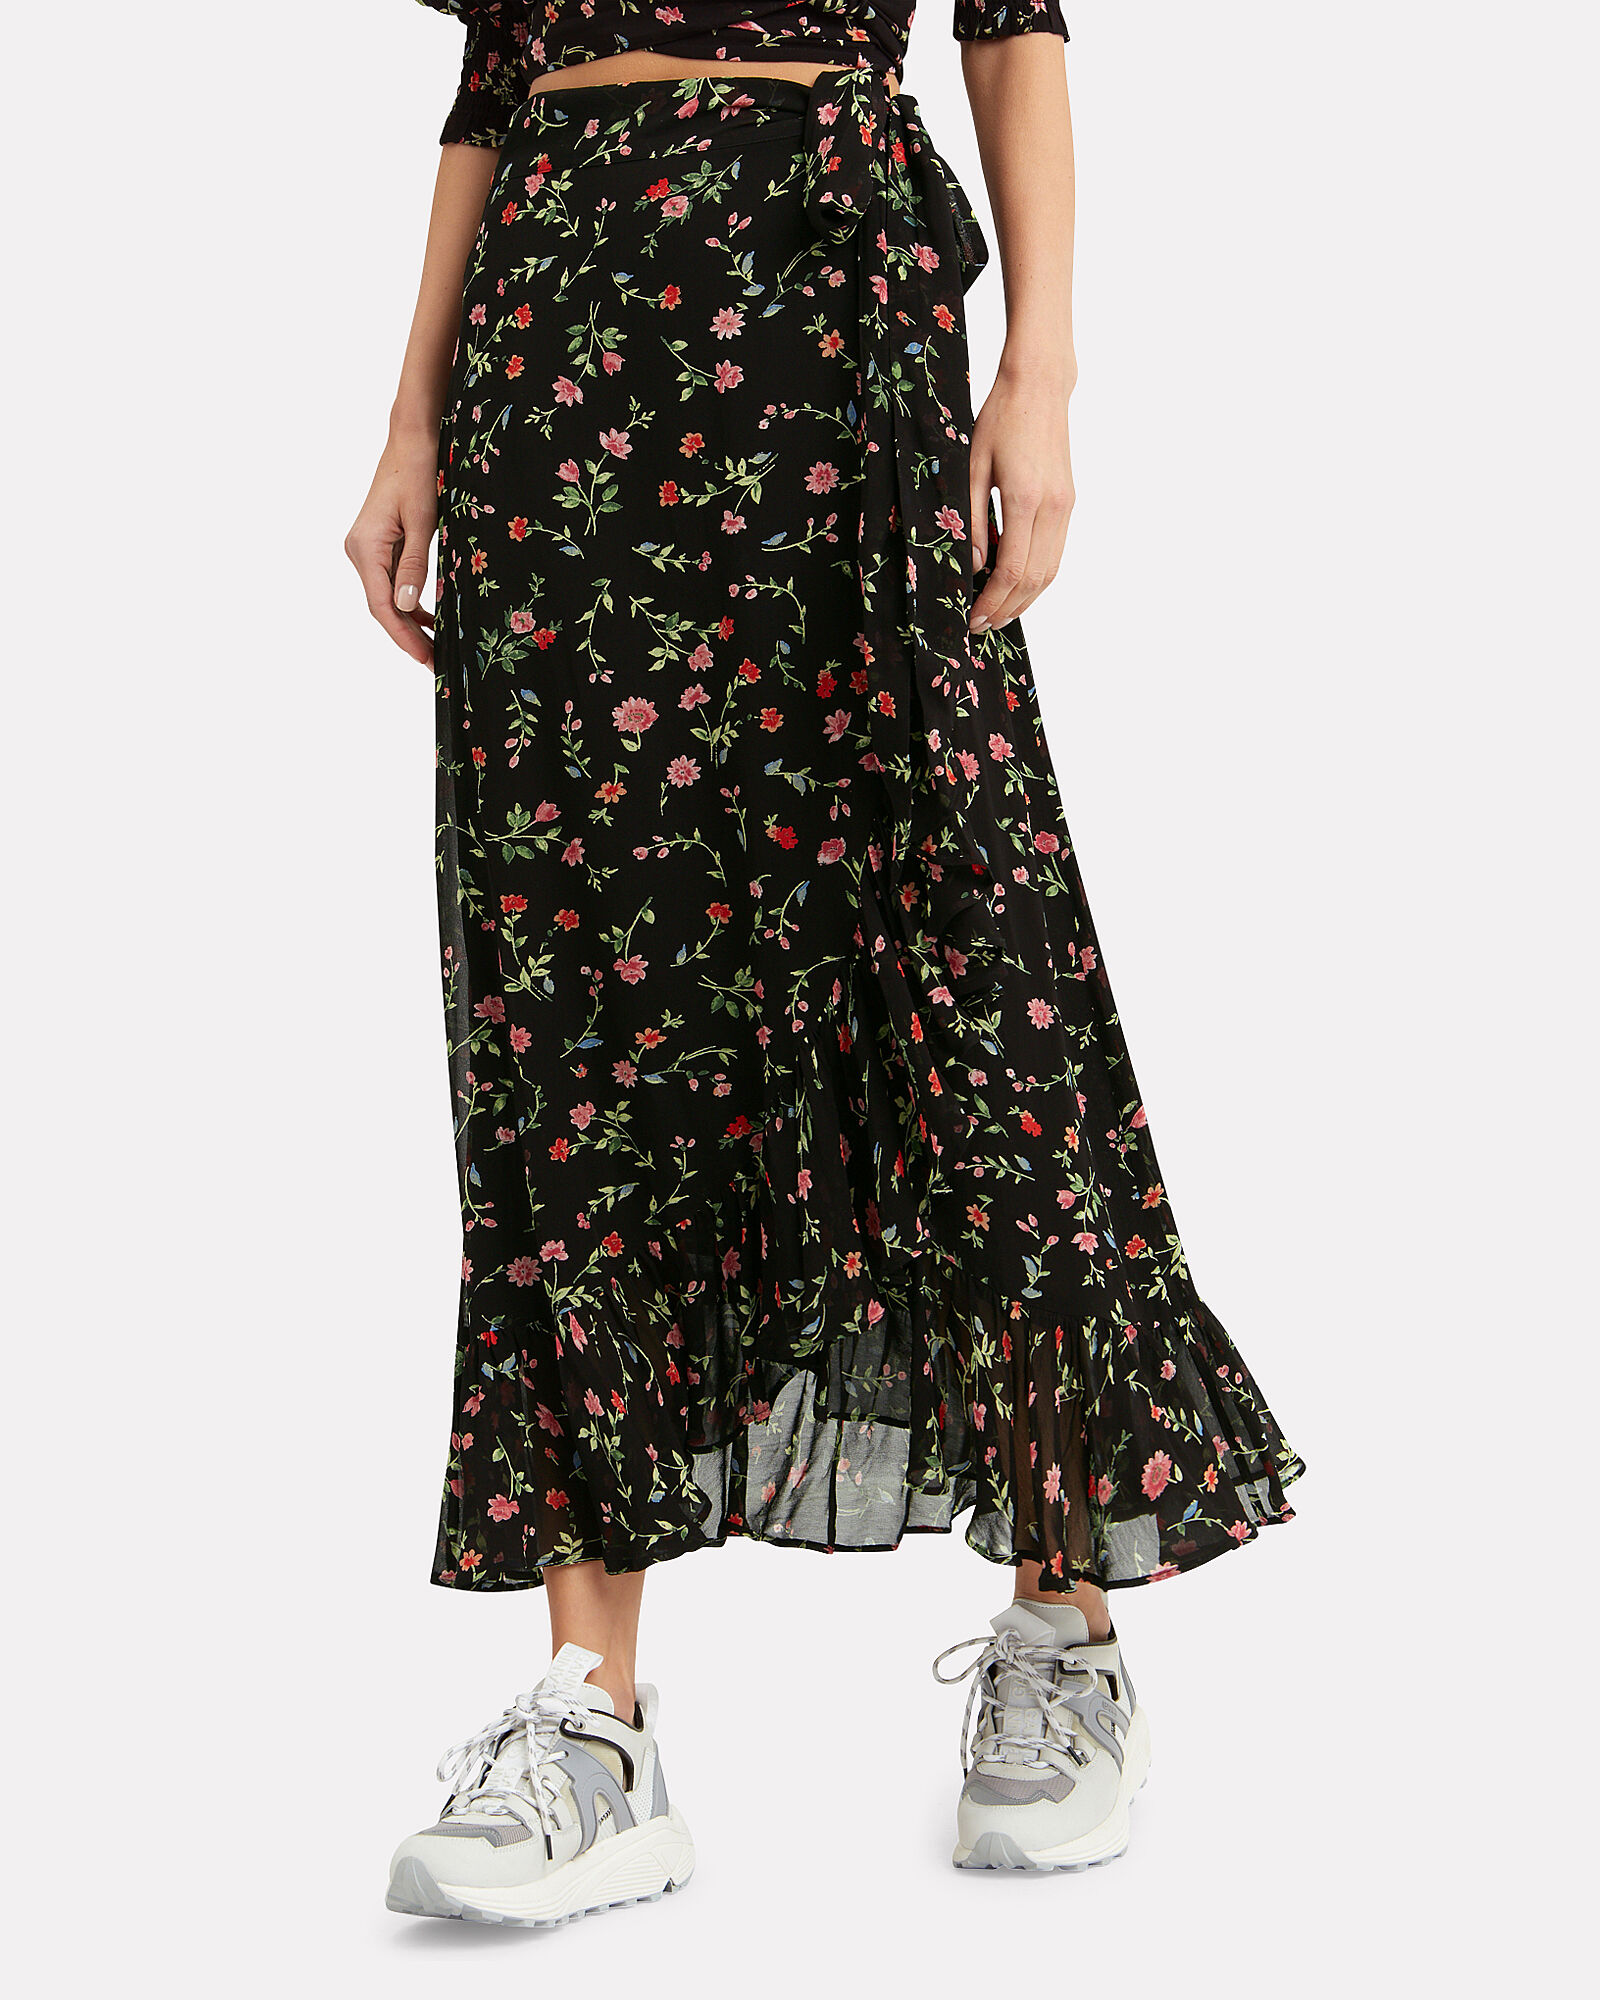 Georgette Floral Wrap Skirt, BLACK/FLORAL, hi-res